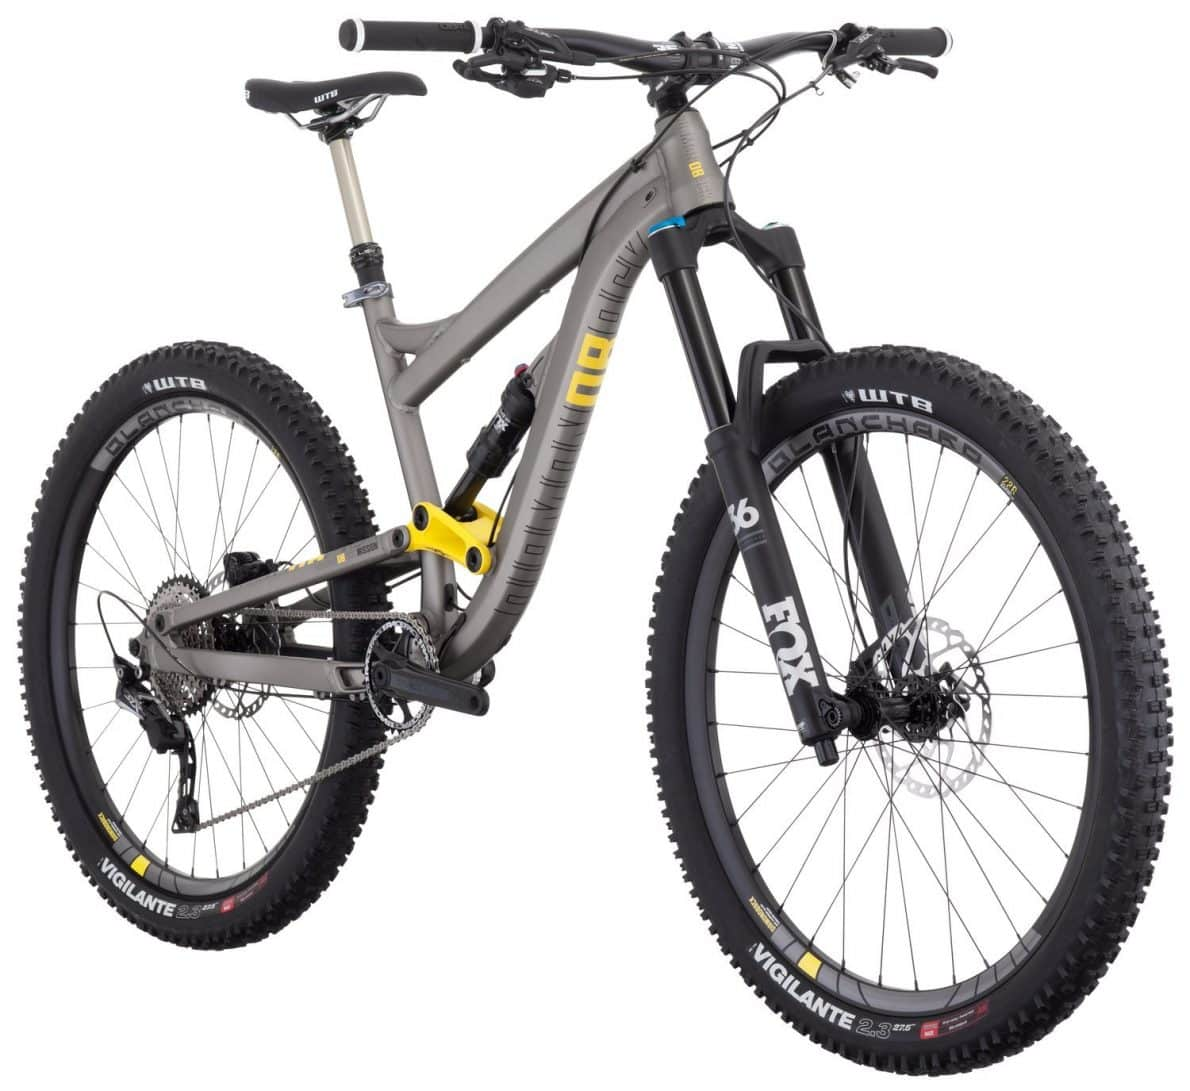 Diamondback Mission 2 Review